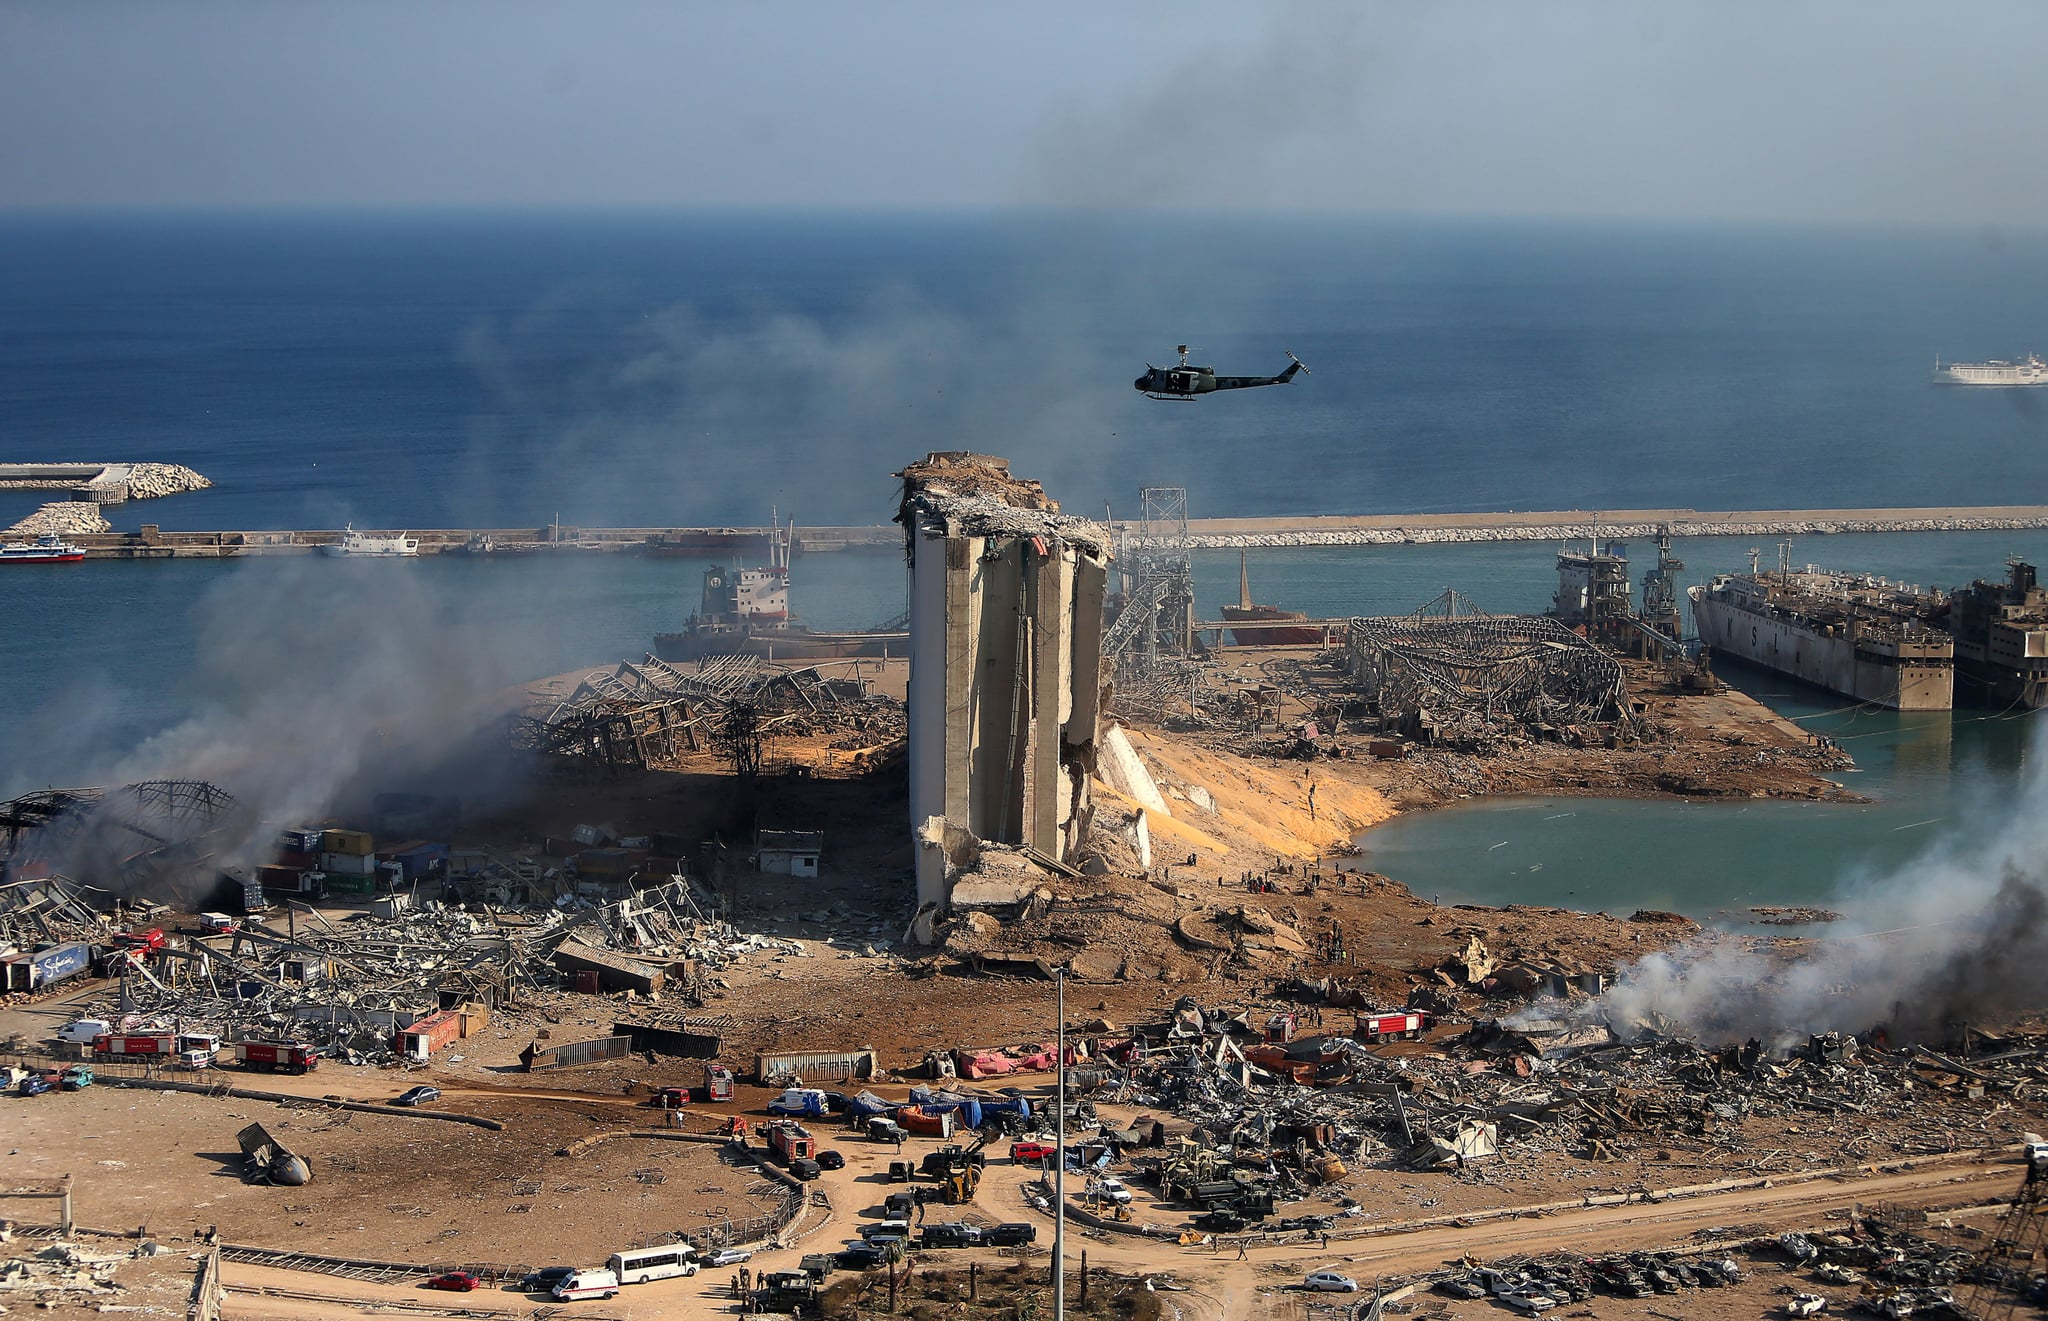 TOPSHOT - A general view shows the damaged grain silos of Beirut's harbour and its surroundings on August 5, 2020, one day after a powerful twin explosion tore through Lebanon's capital, resulting from the ignition of a huge depot of ammonium nitrate at the city's main port. - Rescuers searched for survivors in Beirut after a cataclysmic explosion at the port sowed devastation across entire neighbourhoods, killing more than 100 people, wounding thousands and plunging Lebanon deeper into crisis. The blast, which appeared to have been caused by a fire igniting 2,750 tonnes of ammonium nitrate left unsecured in a warehouse, was felt as far away as Cyprus, some 150 miles (240 kilometres) to the northwest. (Photo by STR / AFP) (Photo by STR/AFP via Getty Images)